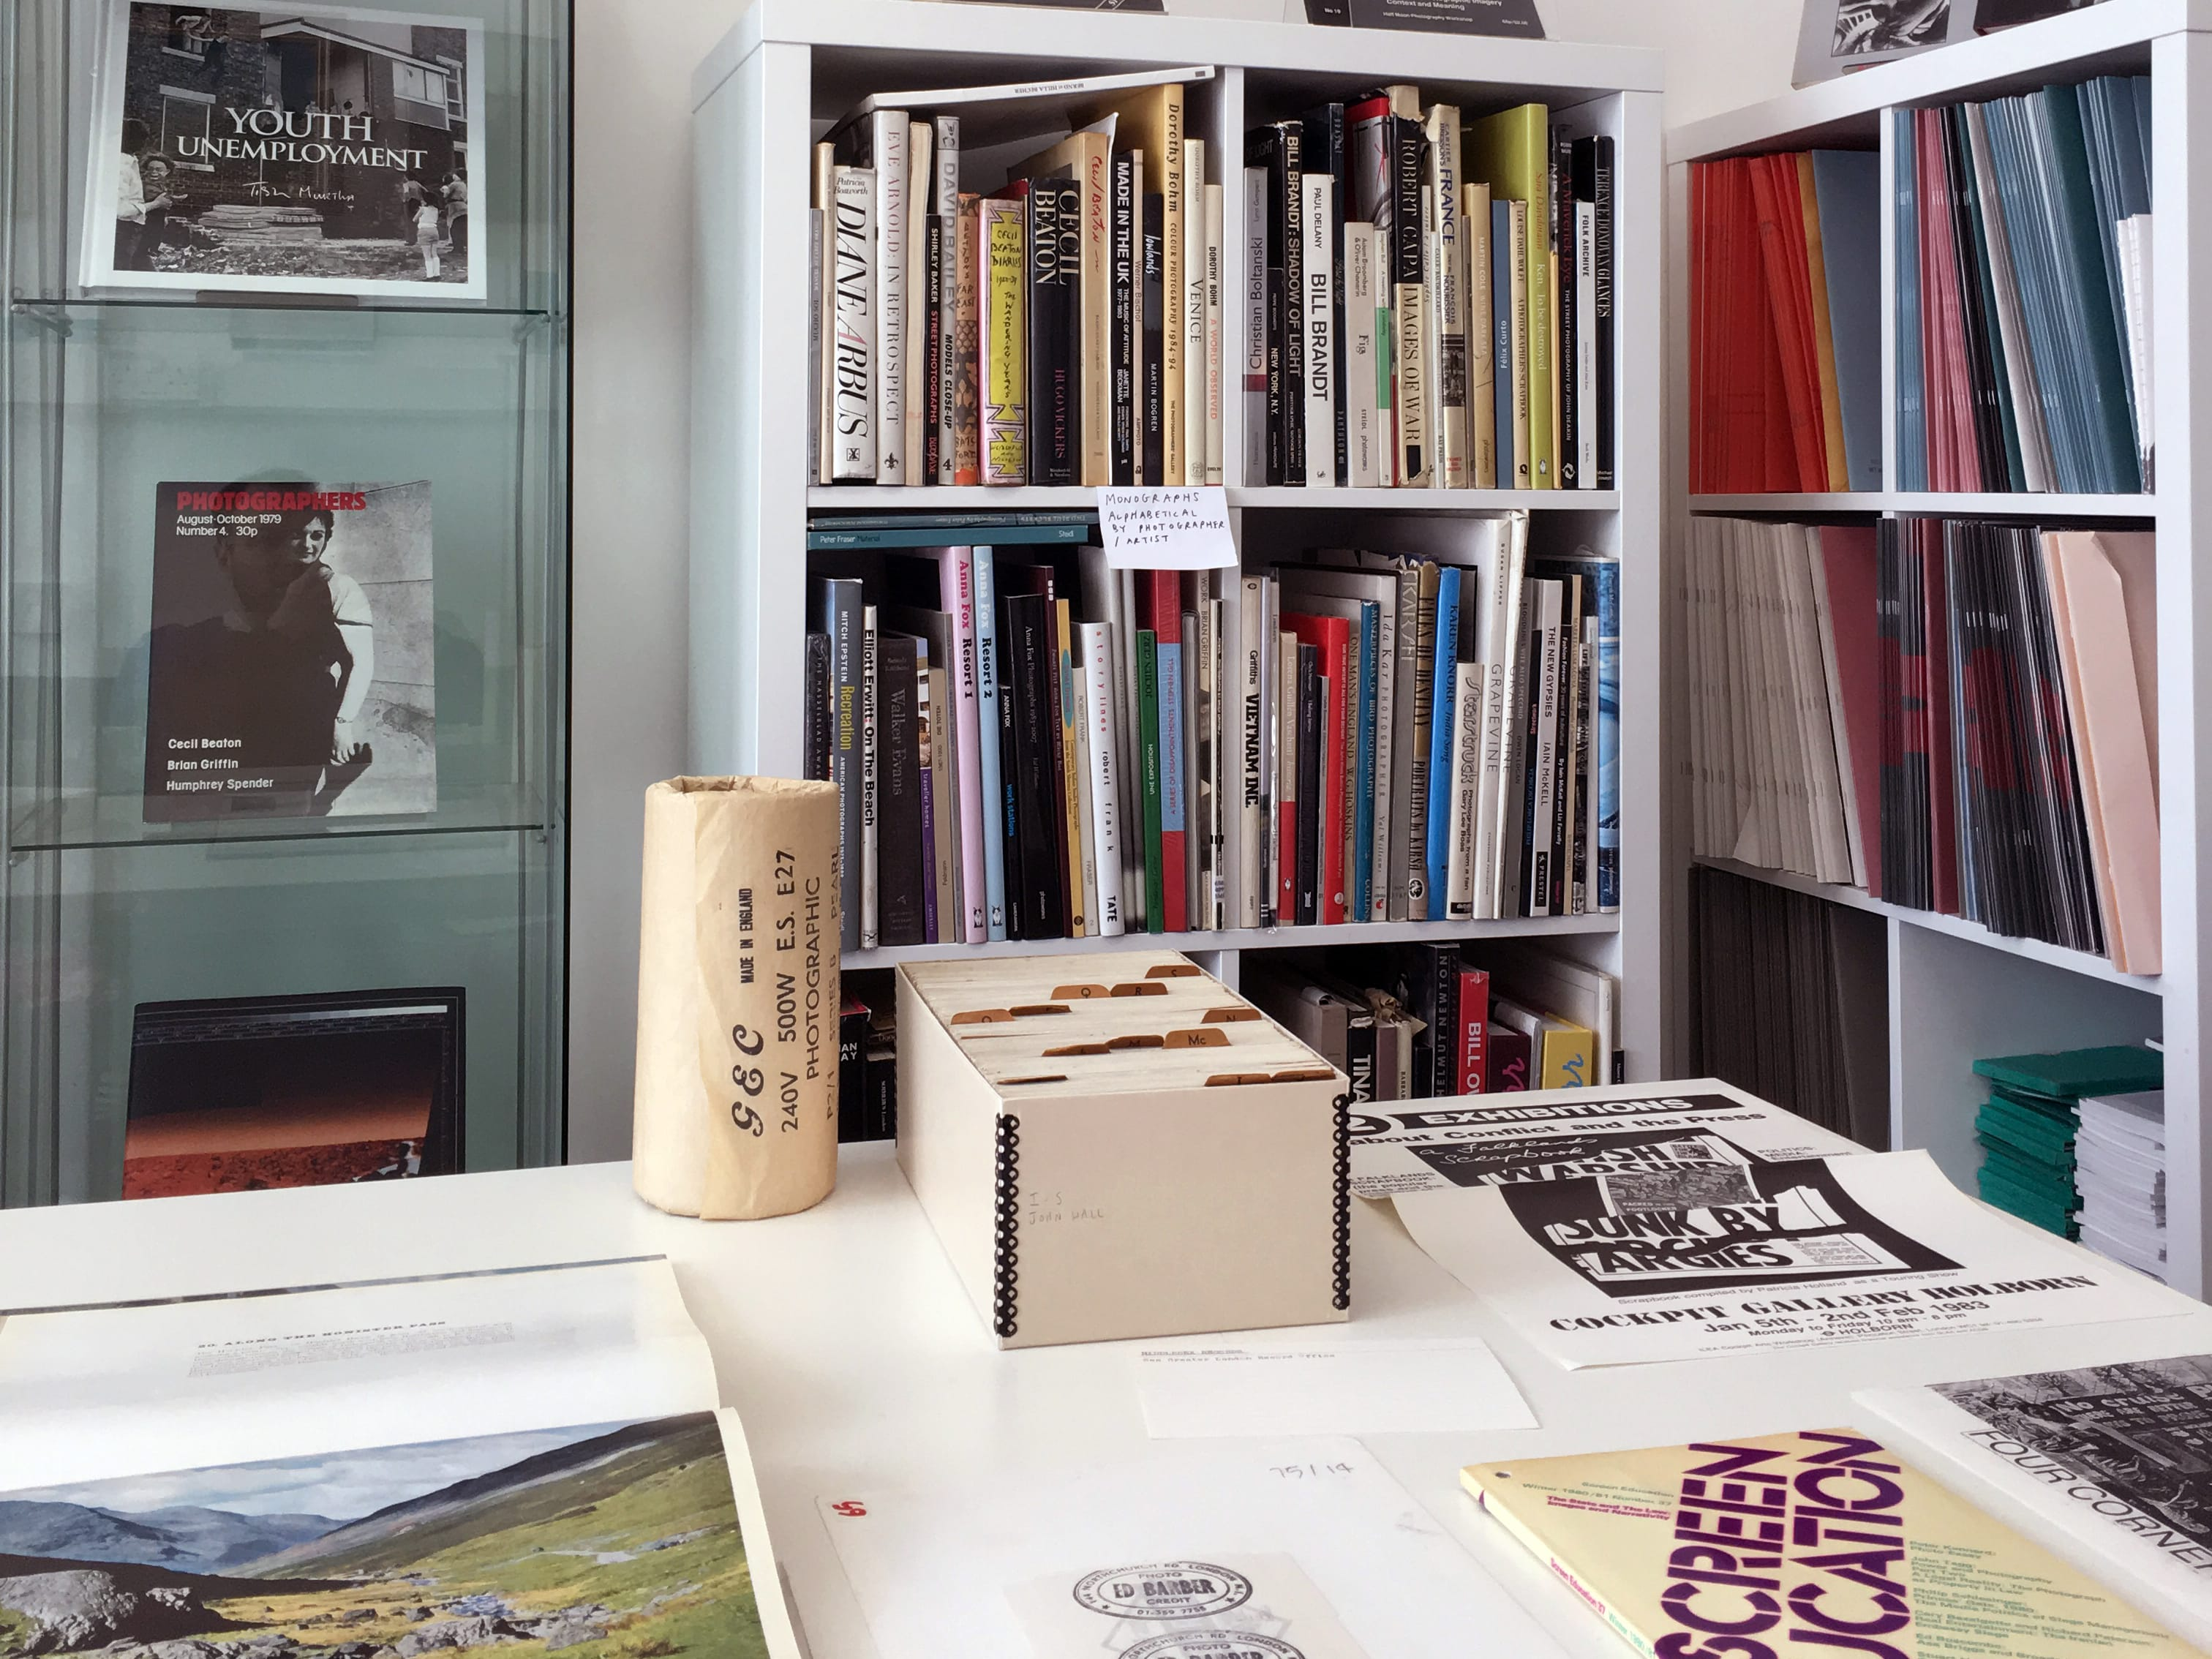 Photograph of Parc research space at London College of Communication, with bookcases and a table display showing photography books.